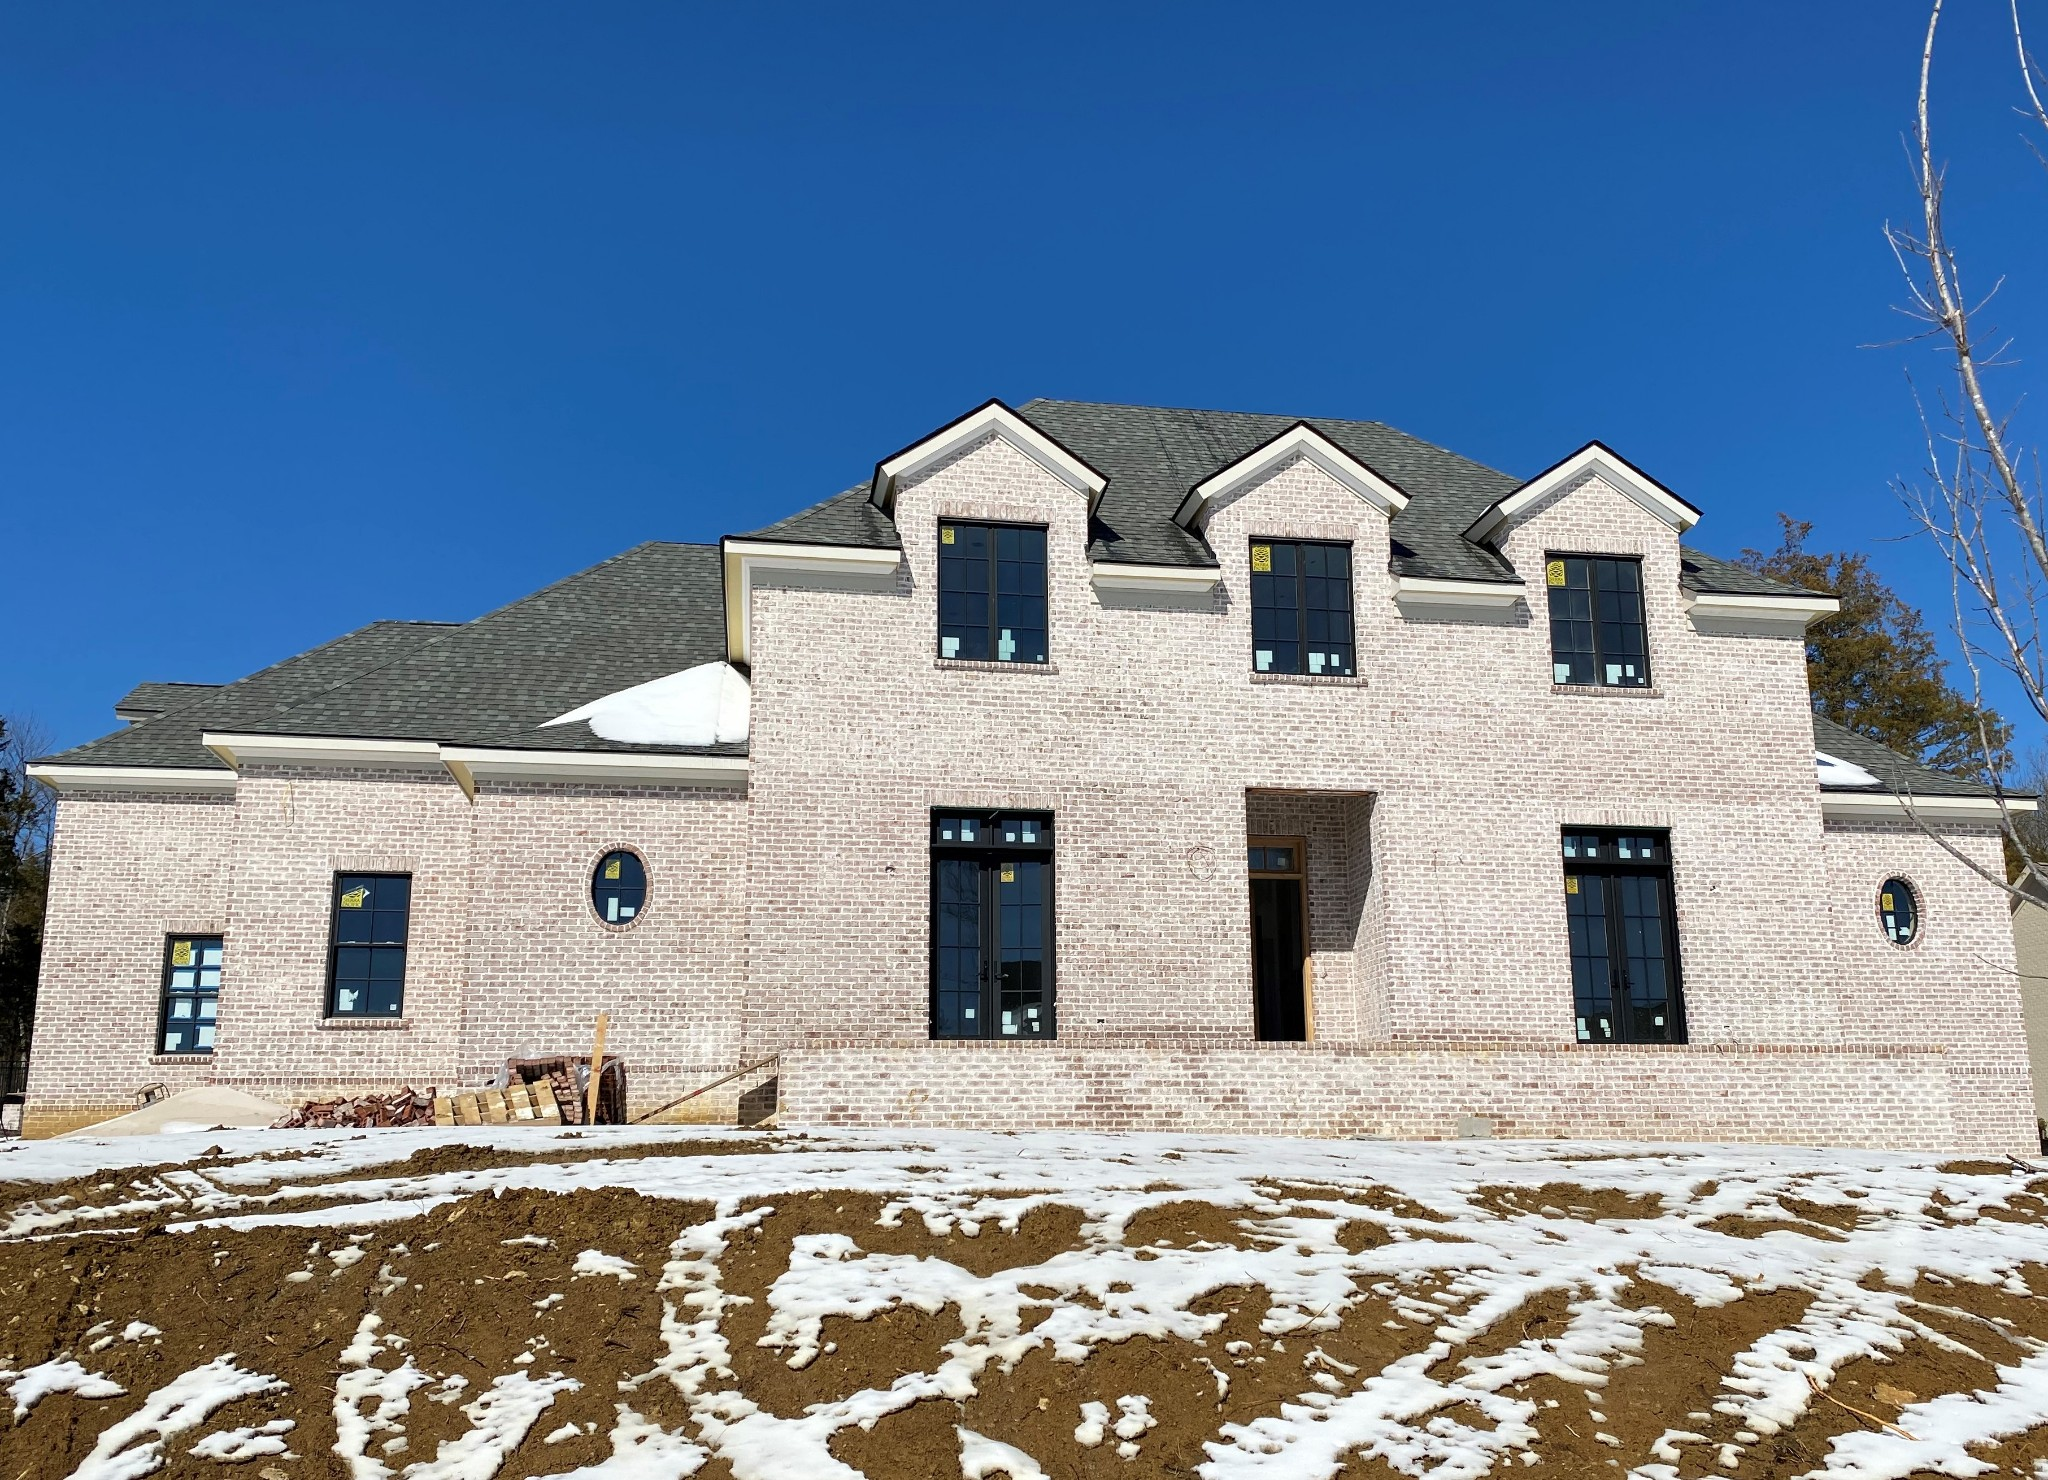 Gorgeous, New  6319 sq ft Custom Home by Cornerstone Premier Homes. Main floor Master and Guest suite, Kitchen & Back Kitchen, Great Room, Study, Dining and Morning Rm. Second floor features 3 additional bedrooms w/ 3 Full Baths, Bonus Rm, Theater Rm and large Loft. Beautiful, covered Outdoor space with fireplace. Stunning fixtures, finishes and design features with attention to detail at every corner.